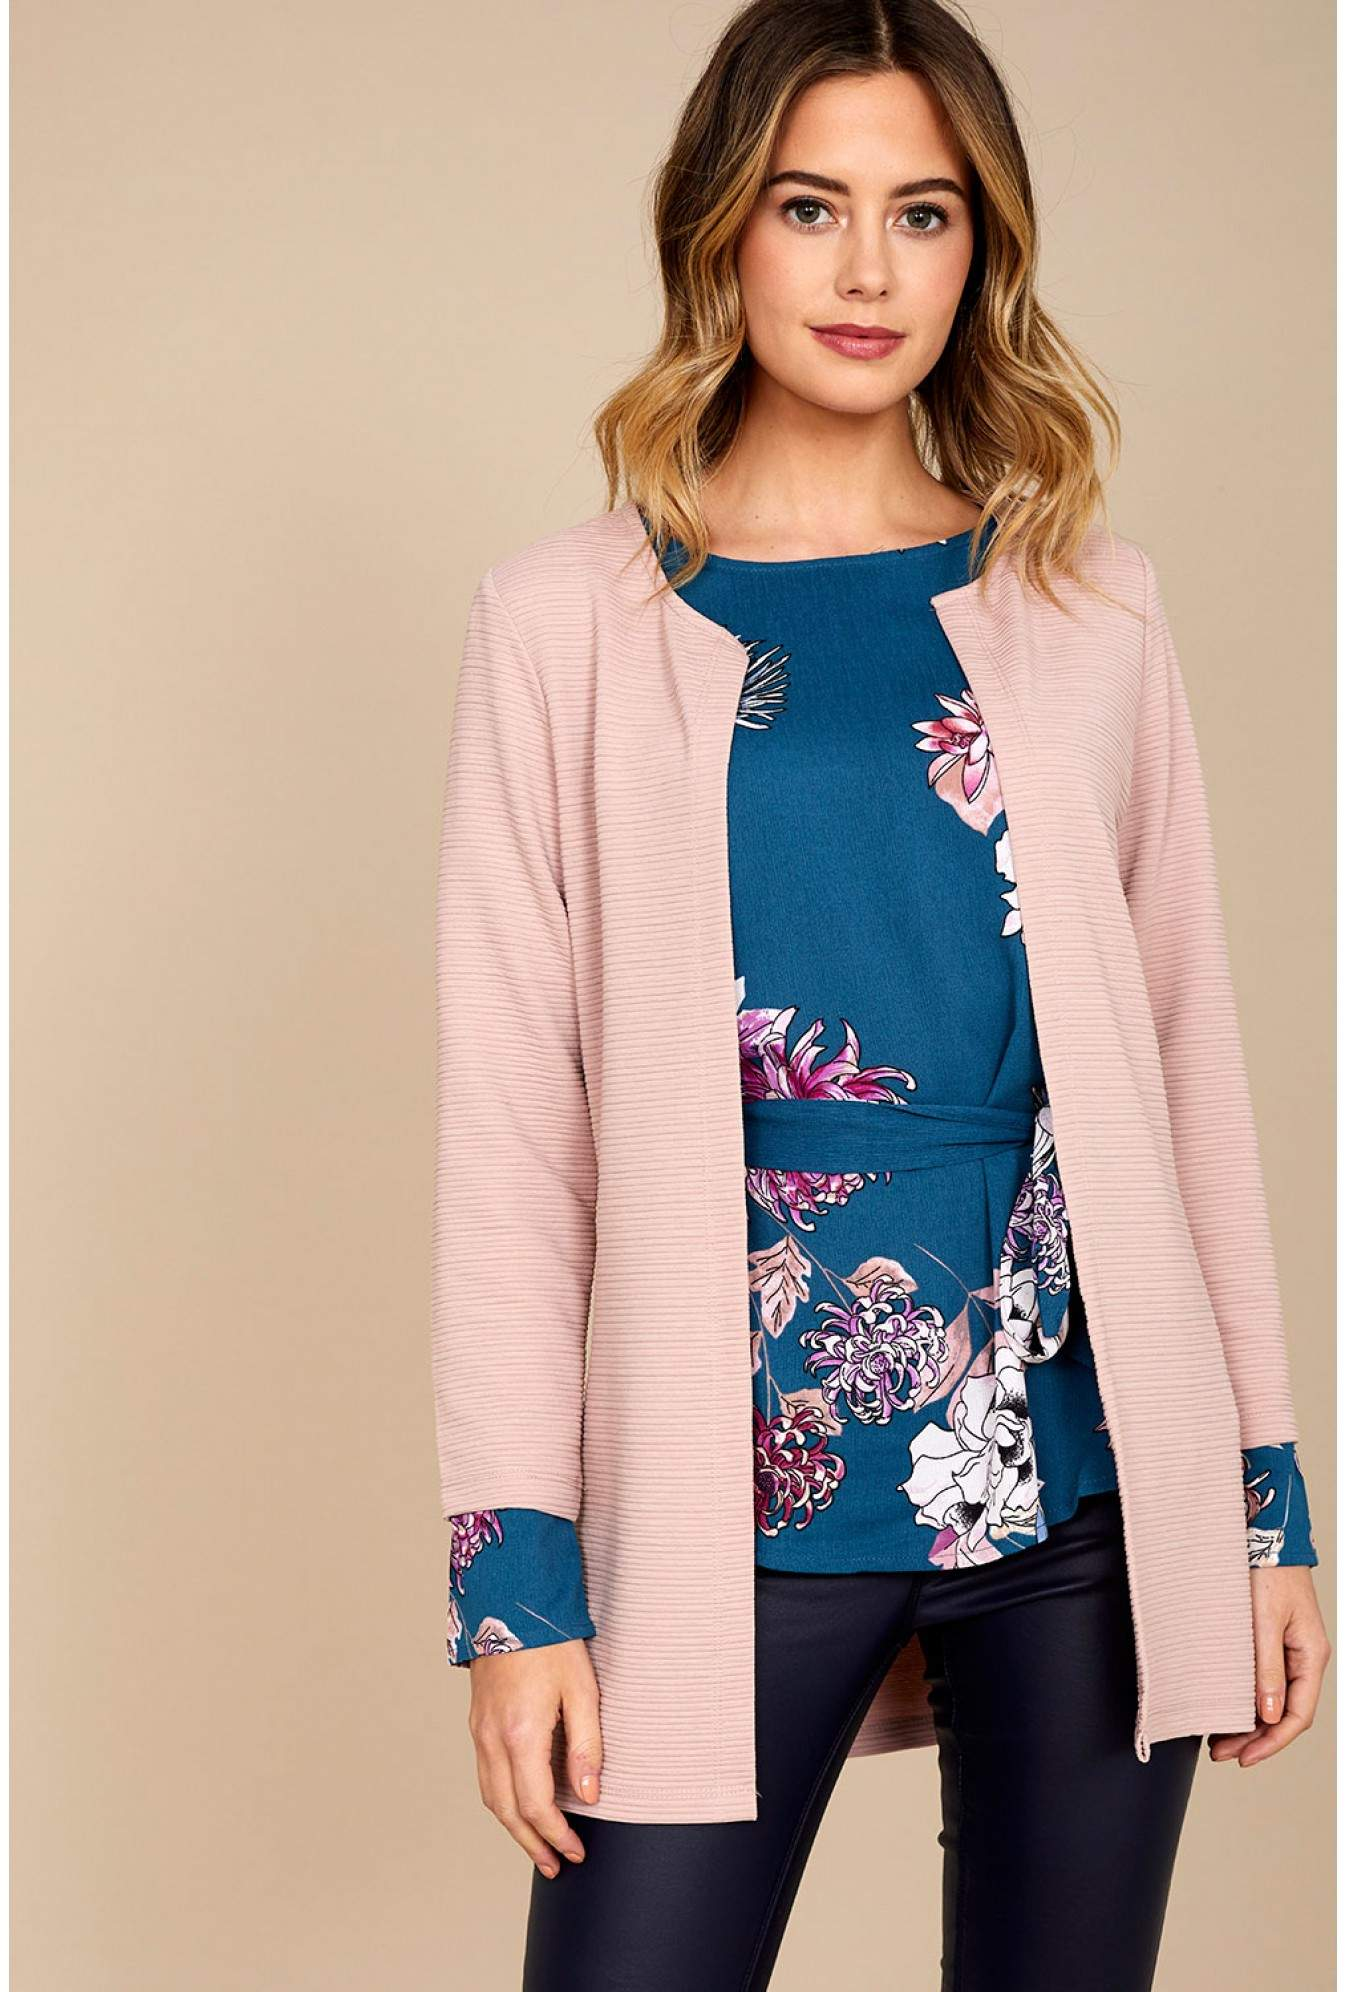 46d710148fcaa1 Only Leco Cardigan in Rose   iCLOTHING